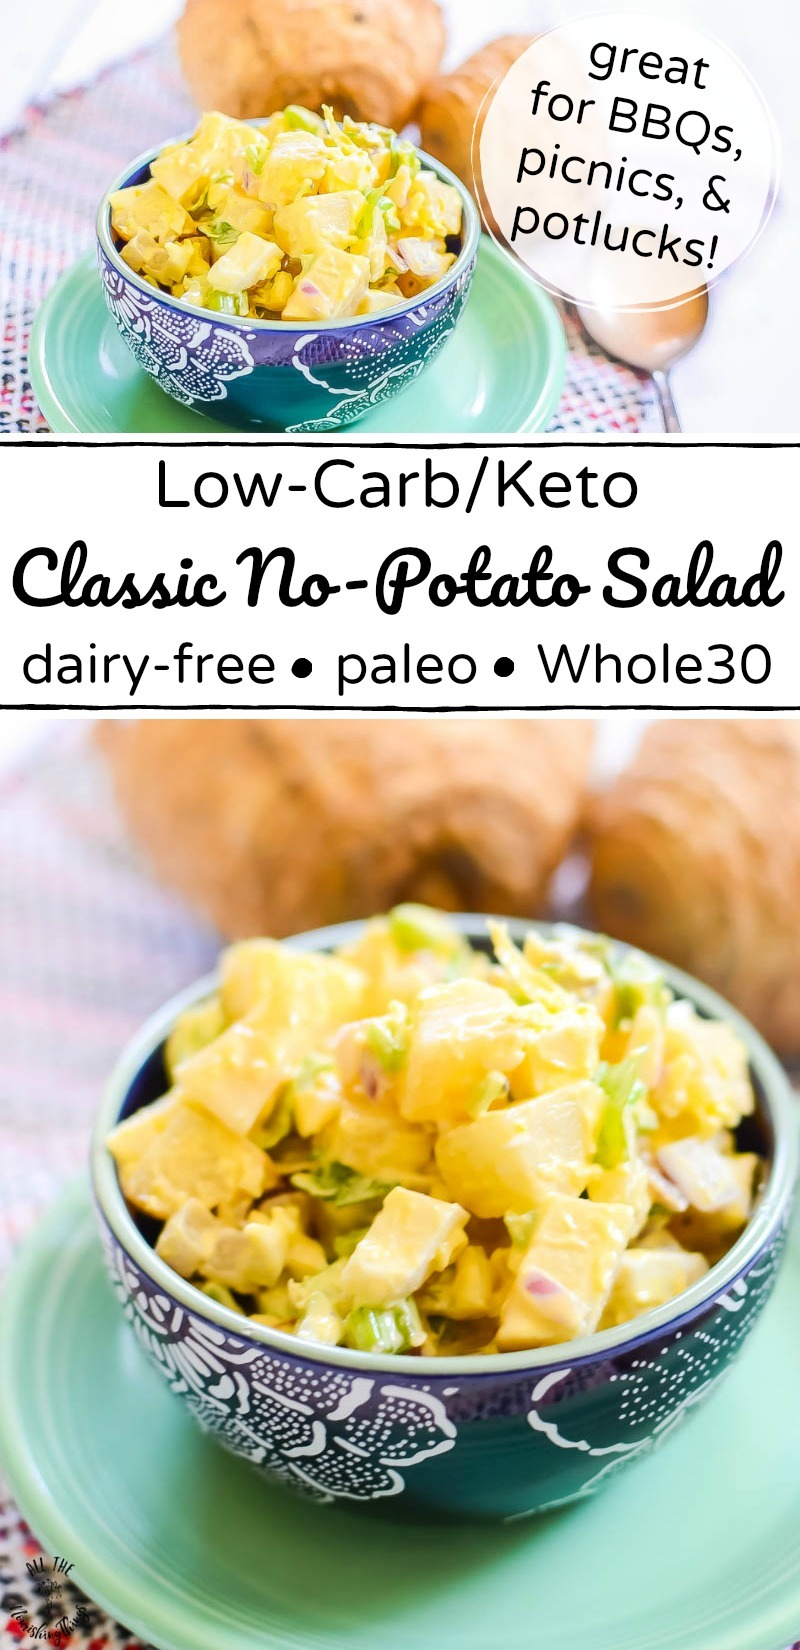 collage of 2 images of classic keto no-potato salad with text overlay between the images